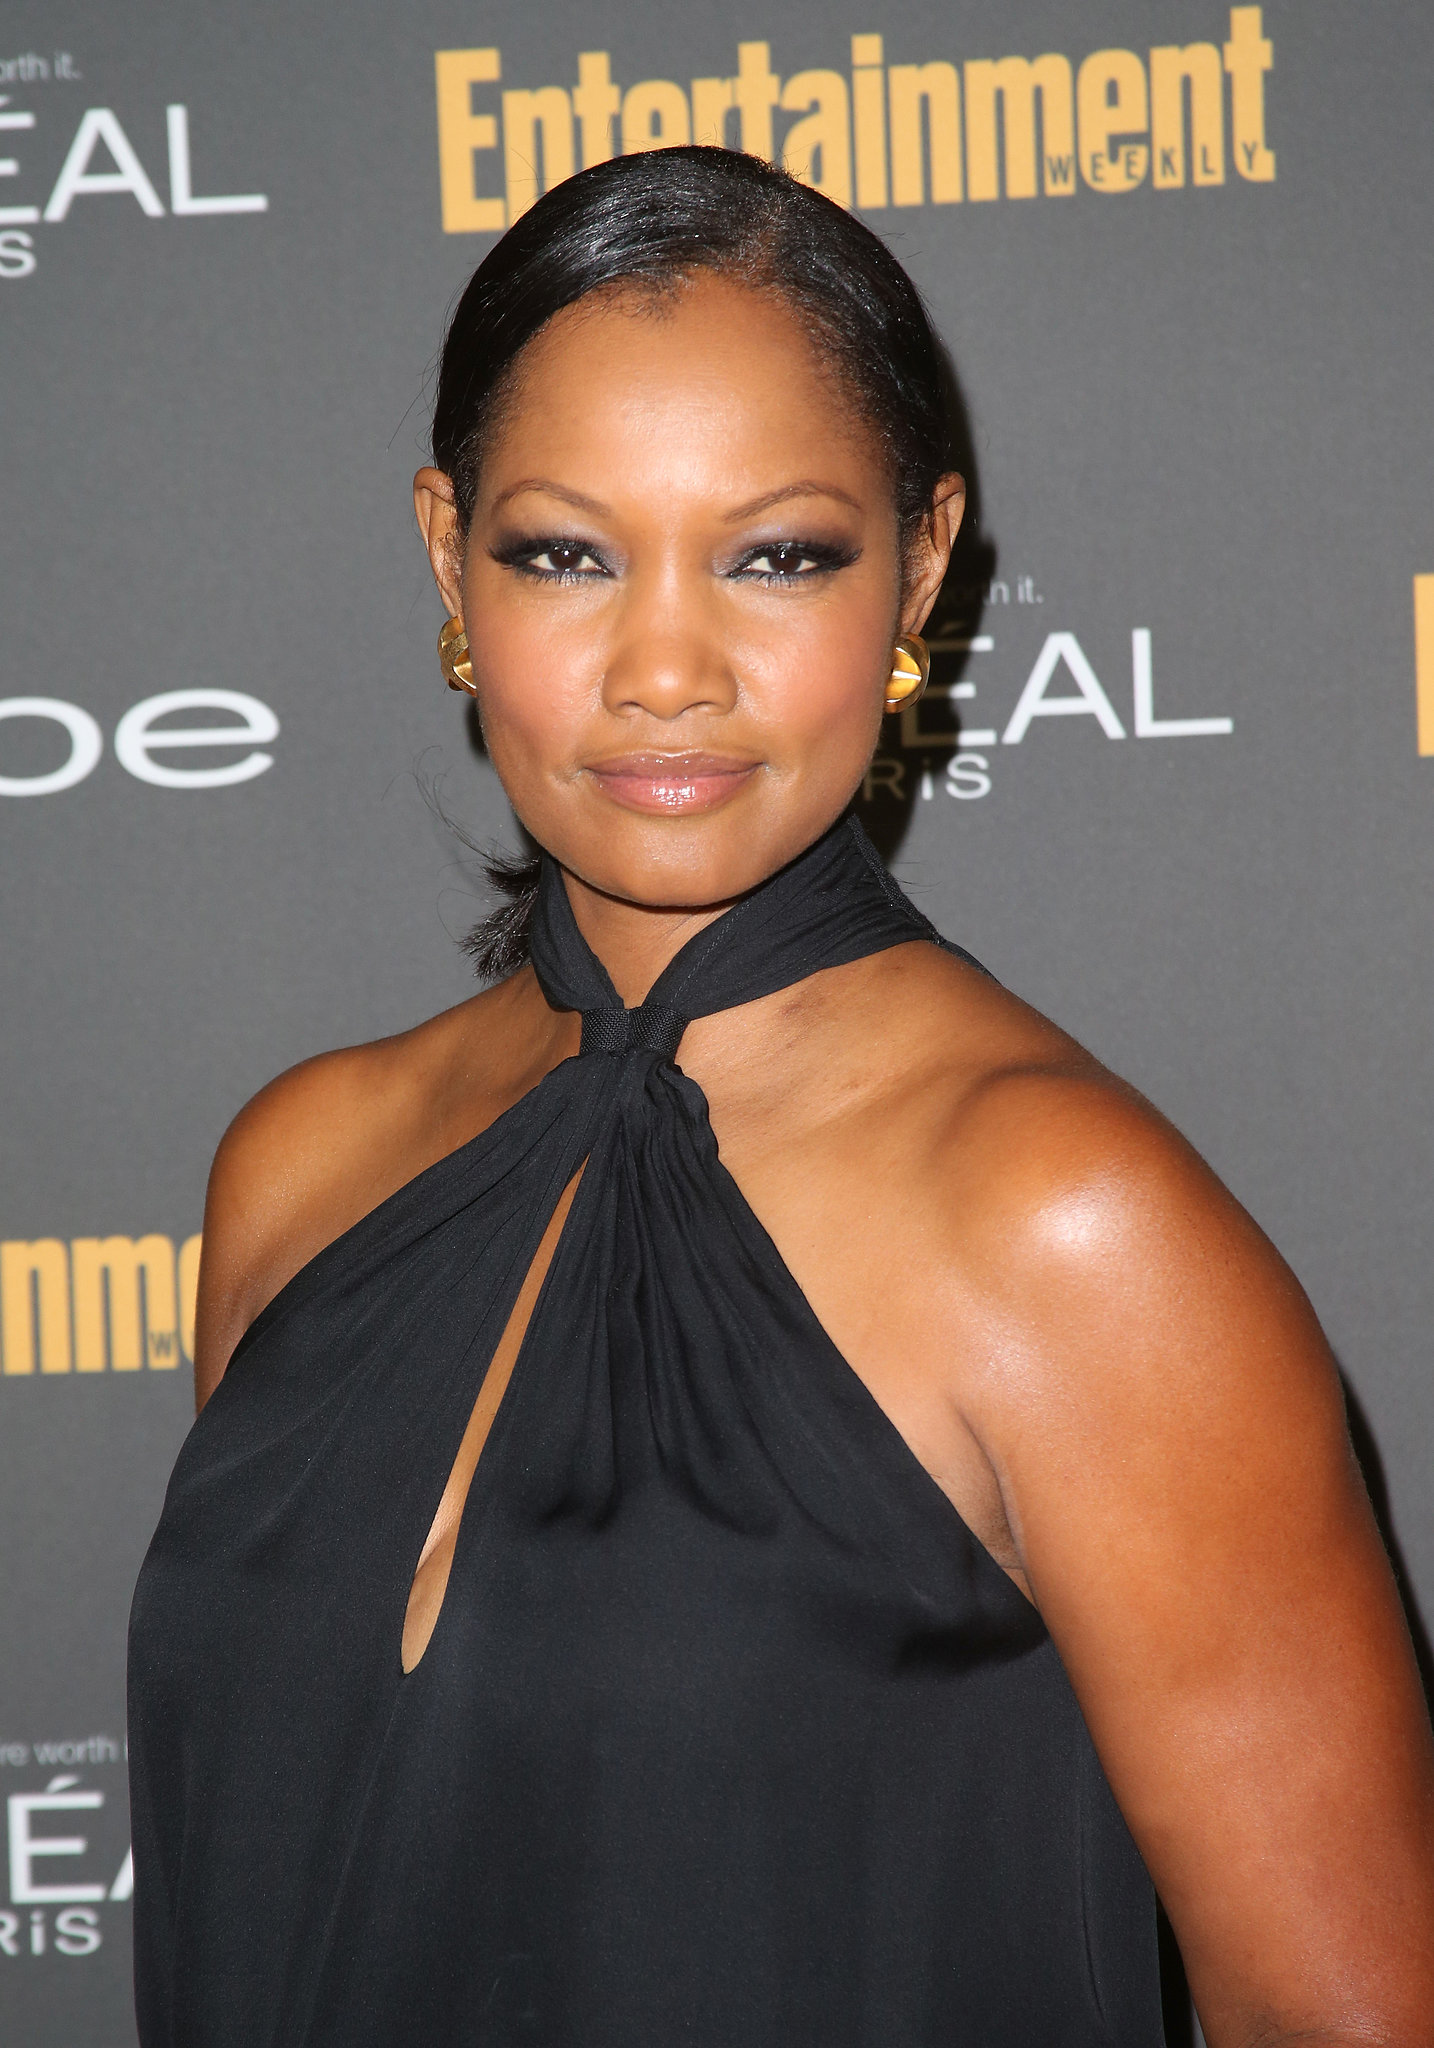 We loved Garcelle Beauvais's heavy eyeliner and side-slicked hairstyle at E